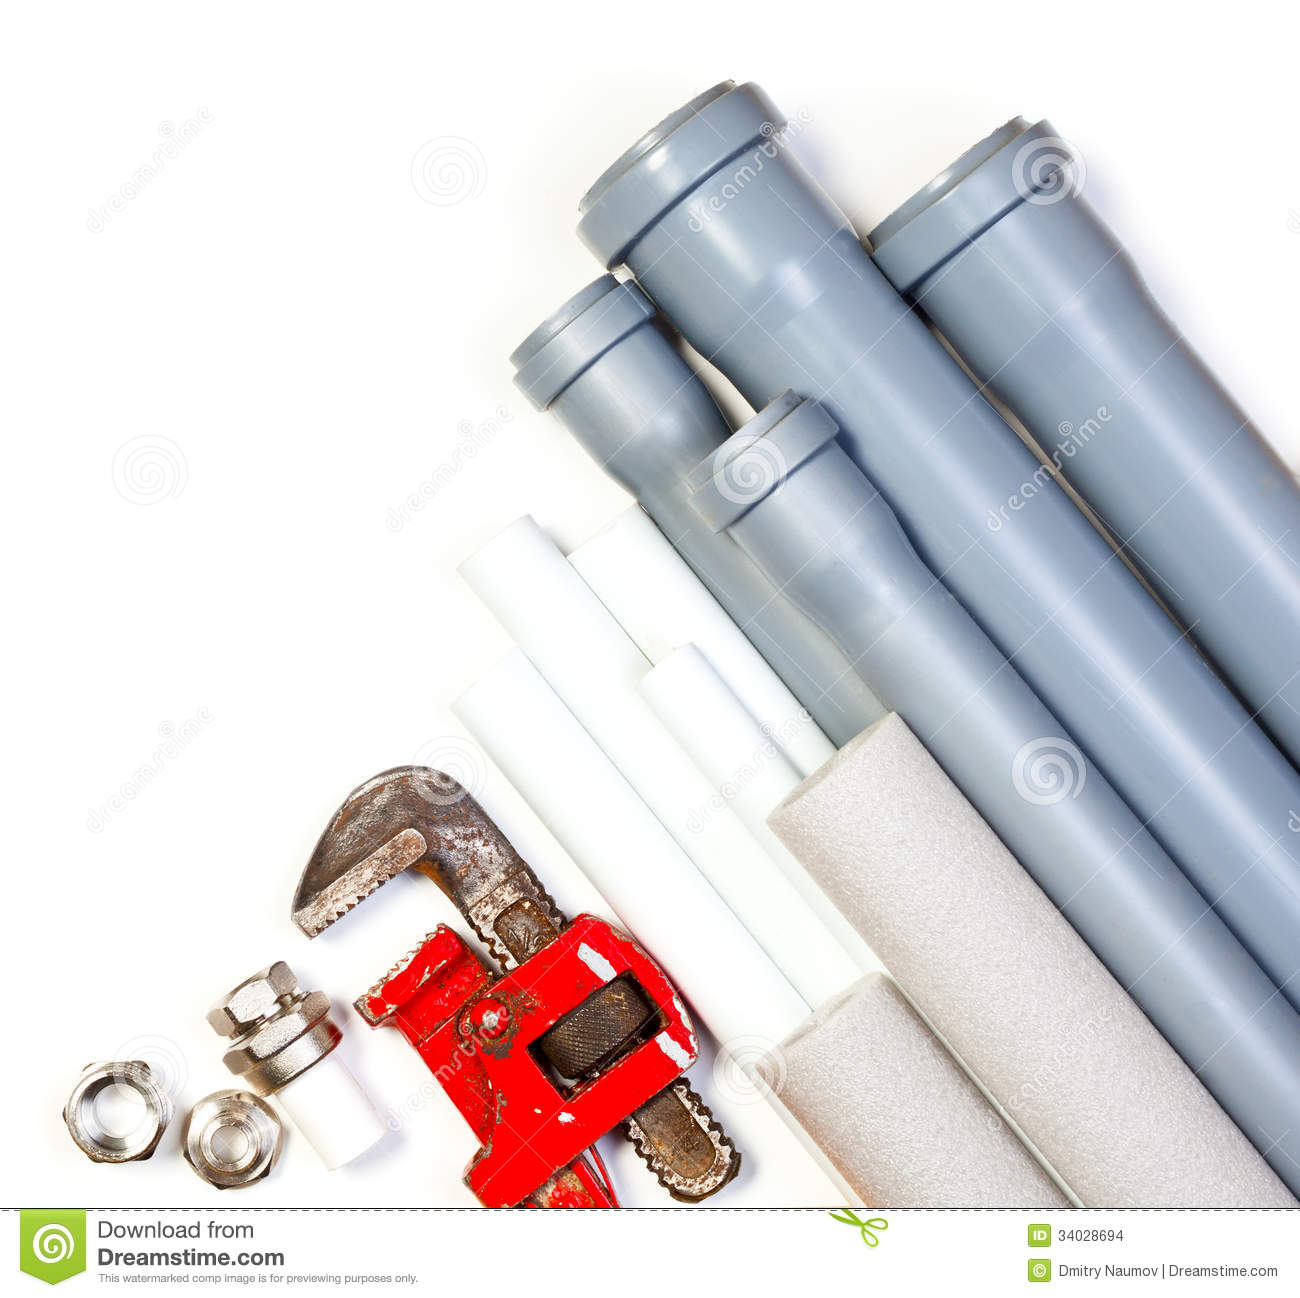 Plumbing supplies stock images image 34028694 for What pipes to use for plumbing